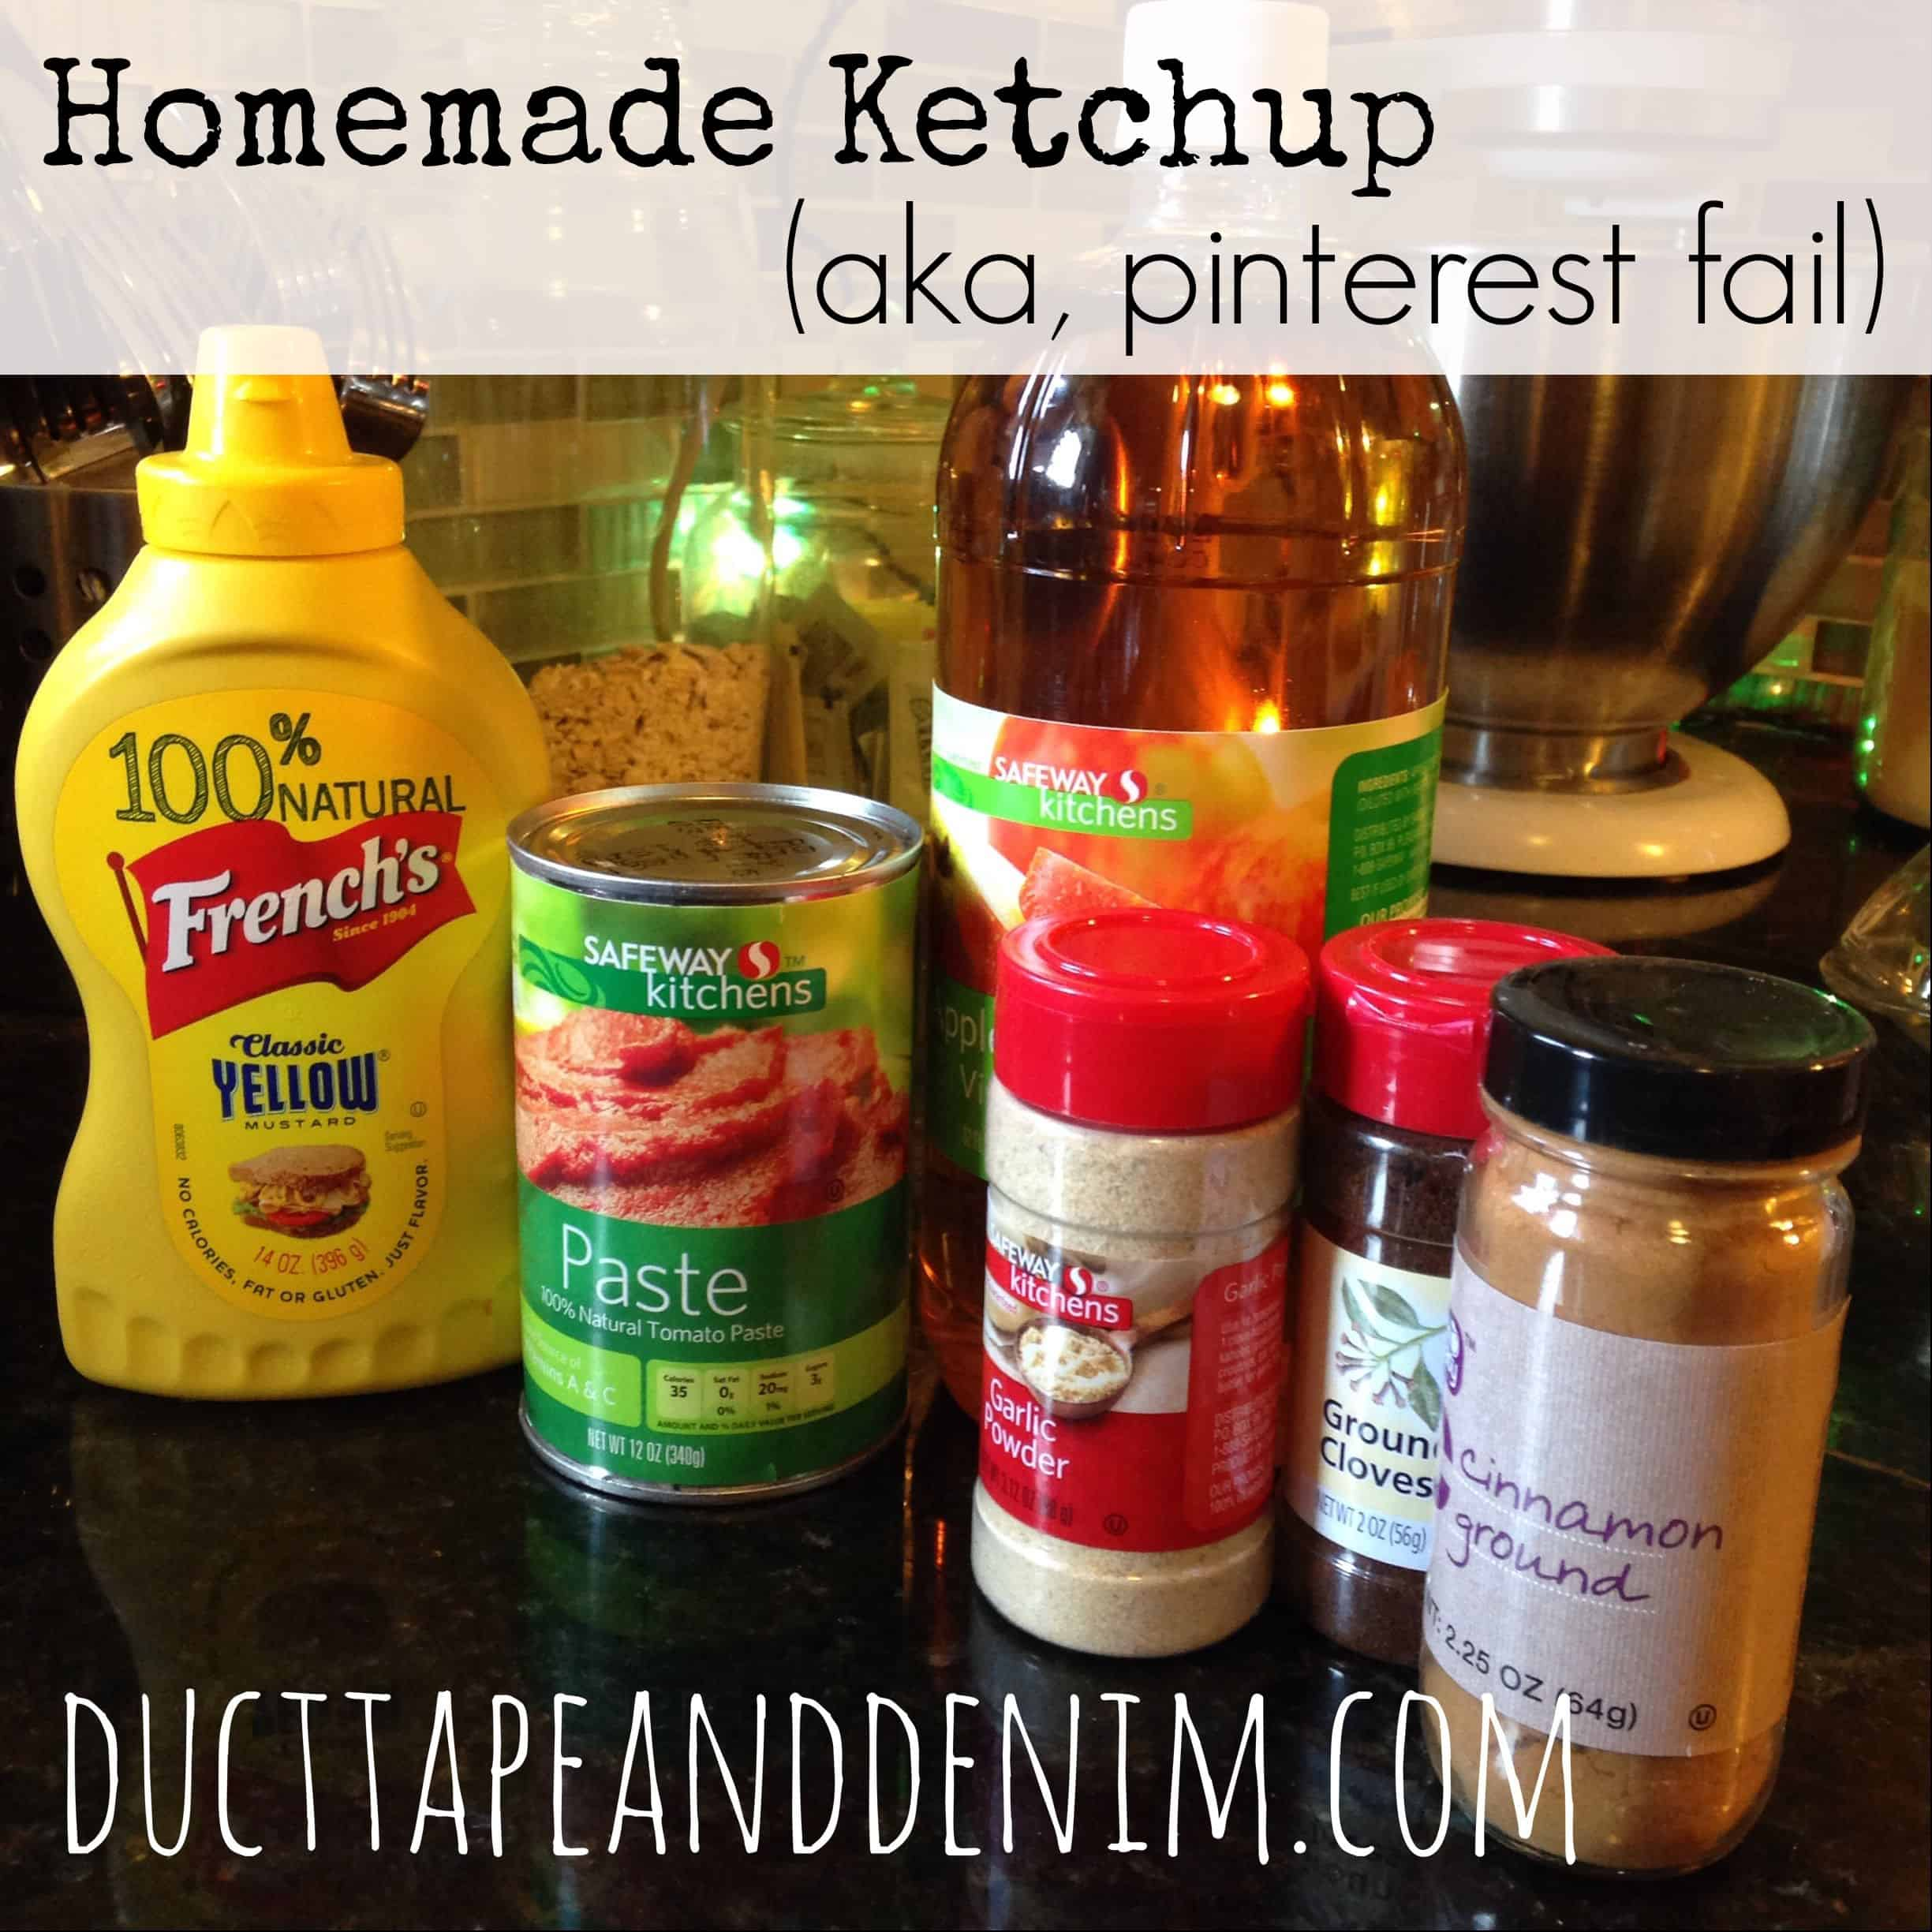 Sugar Free Ketchup Recipe, aka Pinterest Fail